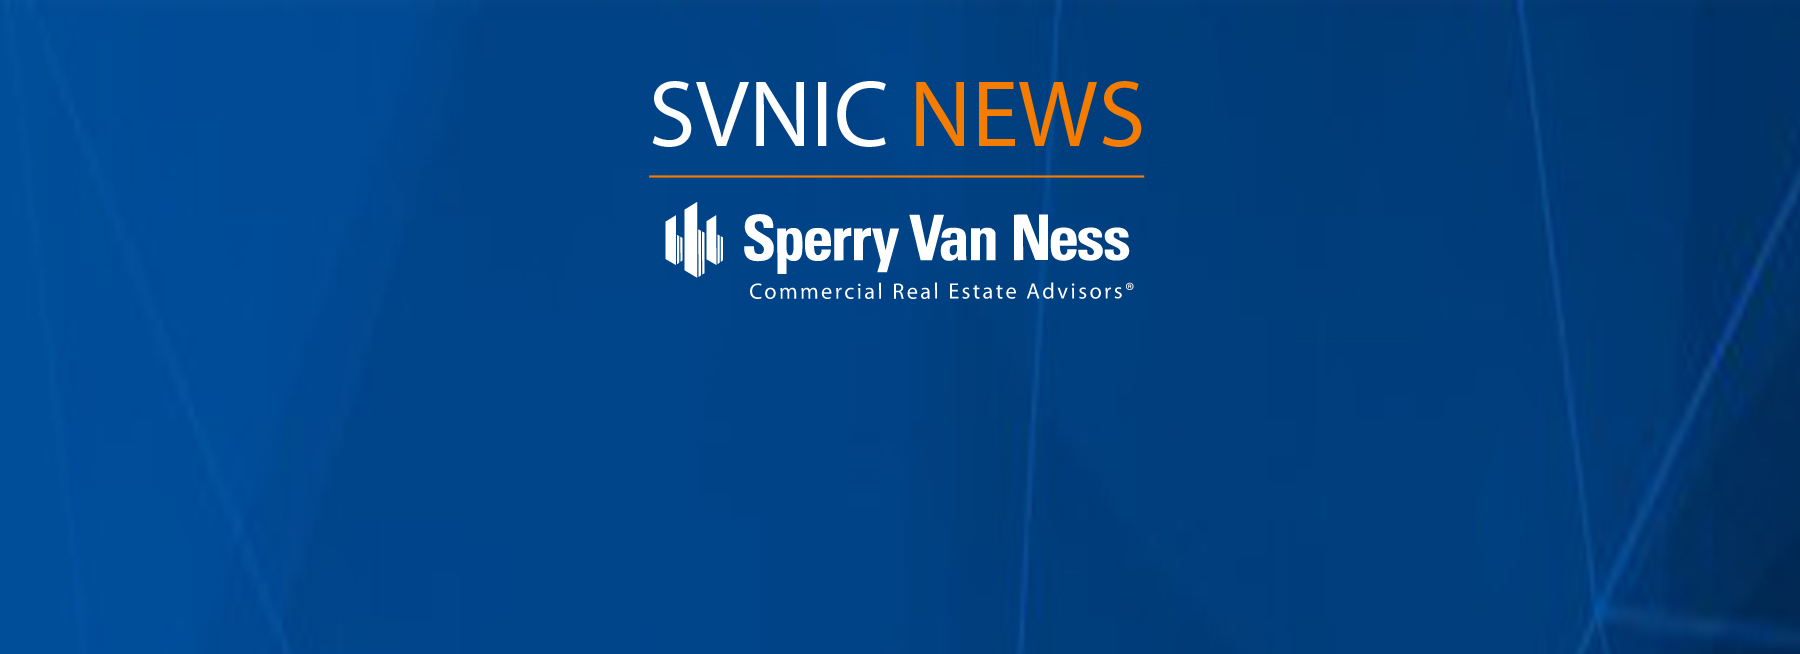 Sperry van ness news